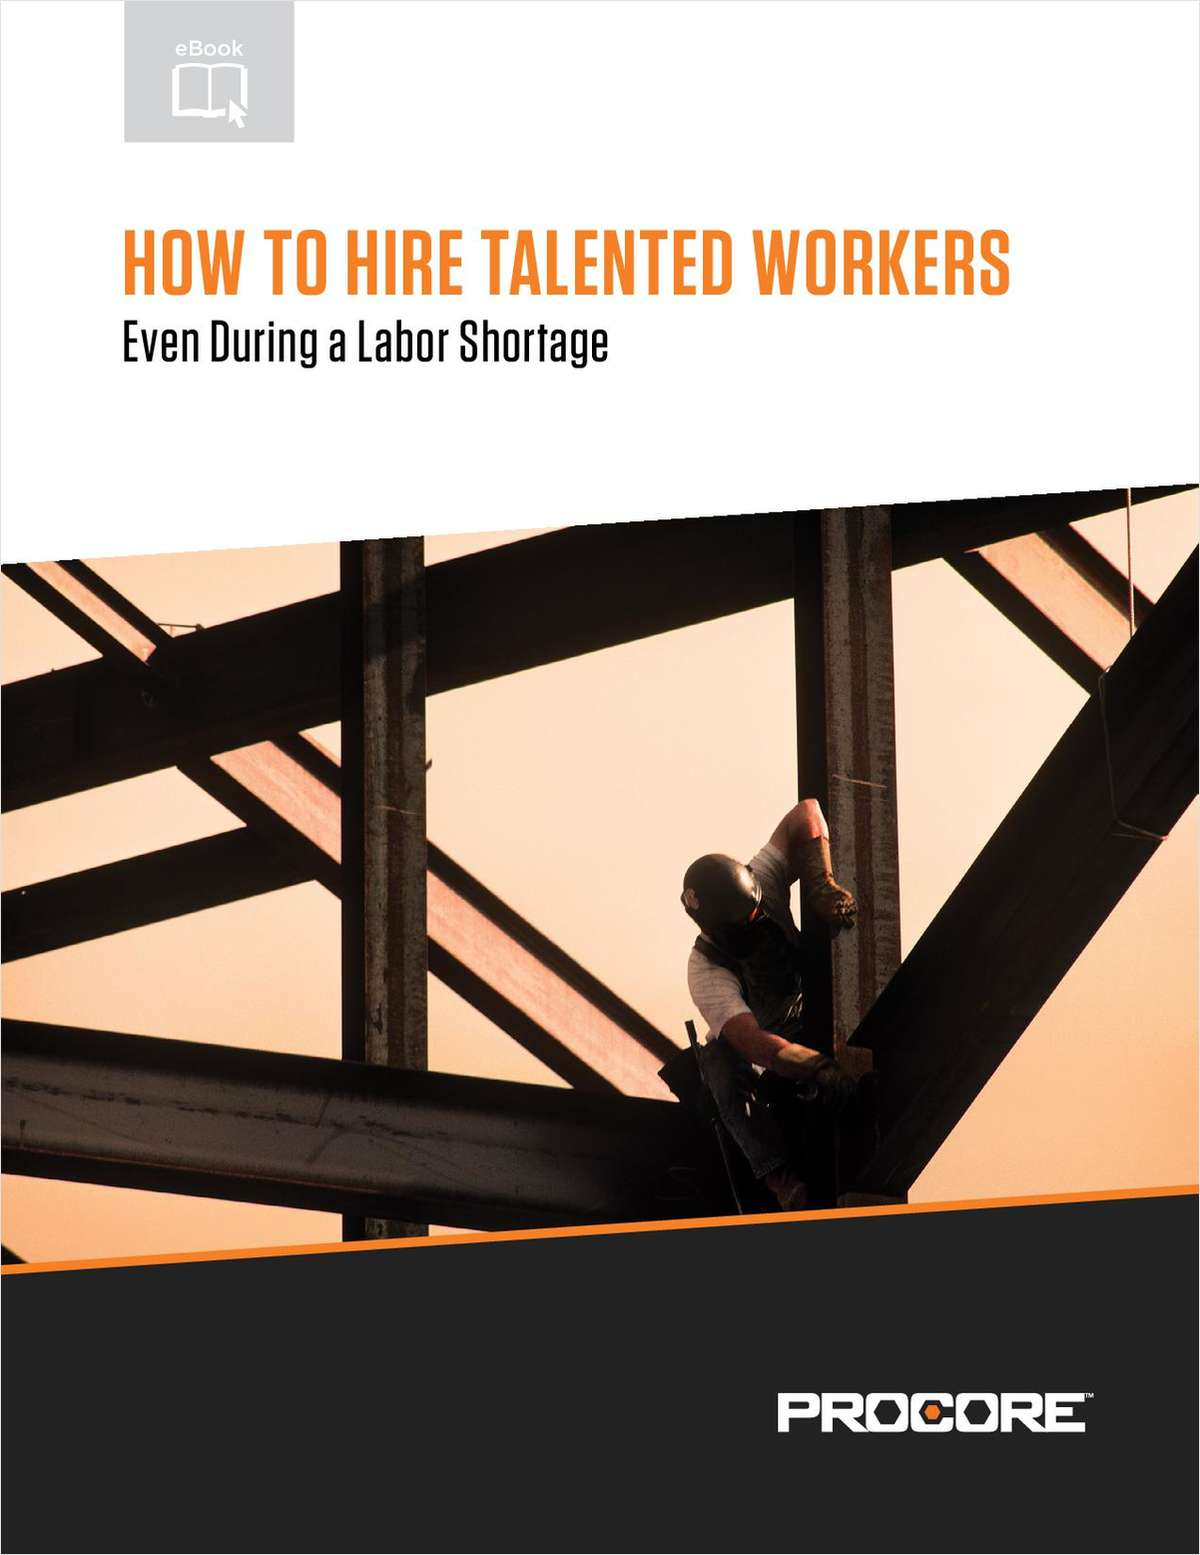 How to Hire Talented Workers, Even During a Labor Shortage